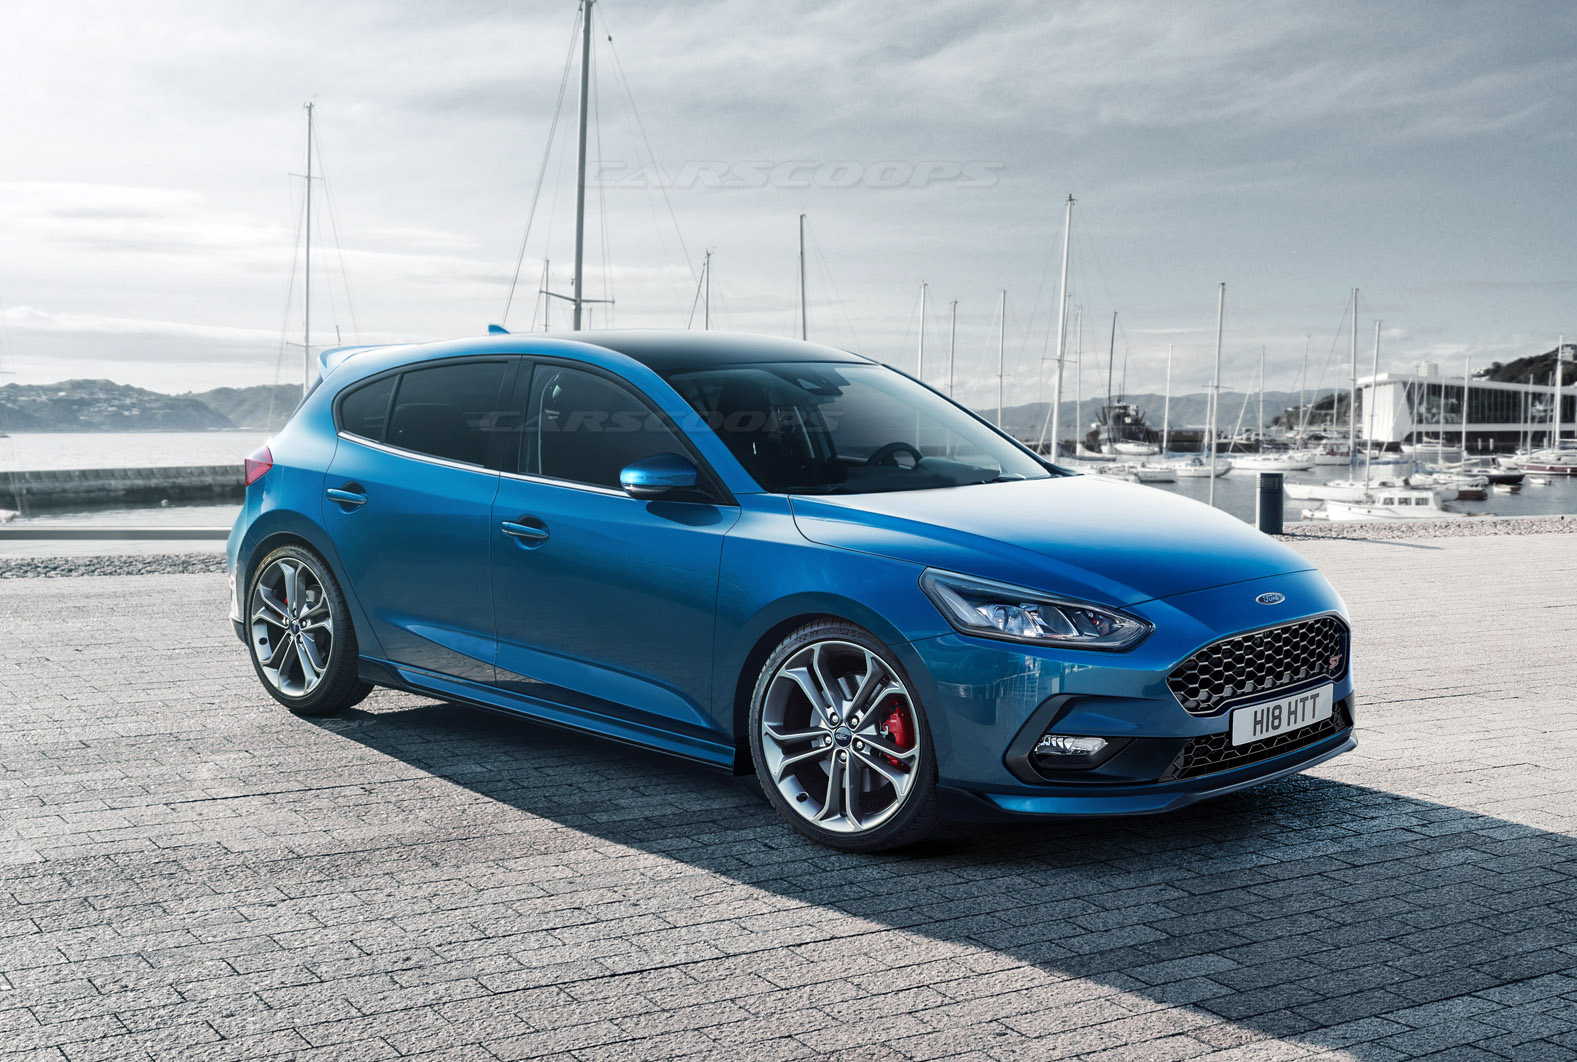 2019-Ford-Focus-ST-Carscoops